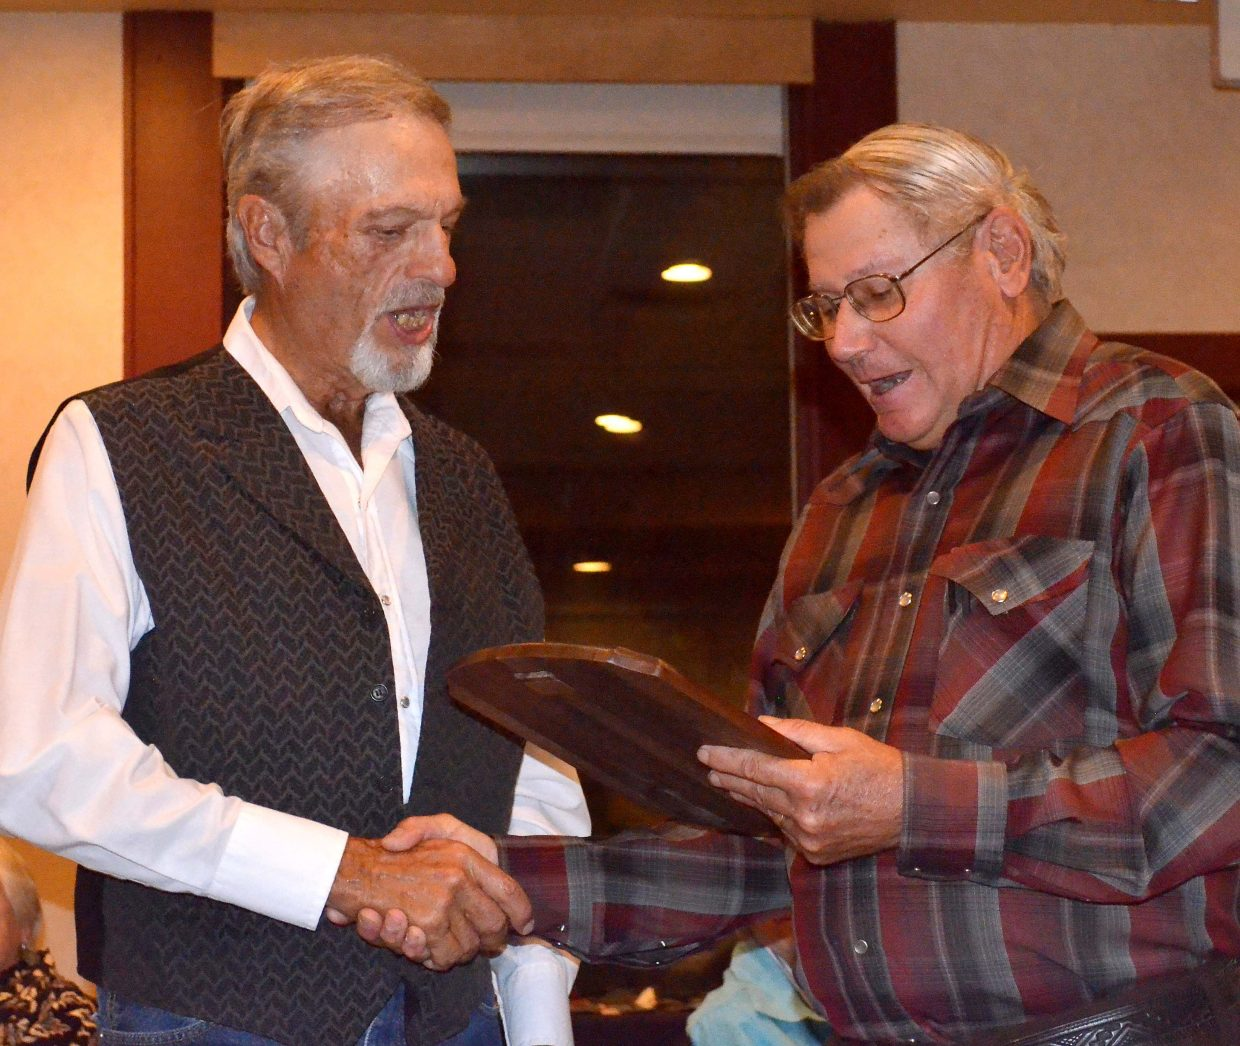 Pleasant Valley rancher Bill Gay, left, receives the Leckenby Award from Jim Stanko, representing the Tread of Pioneers Museum.